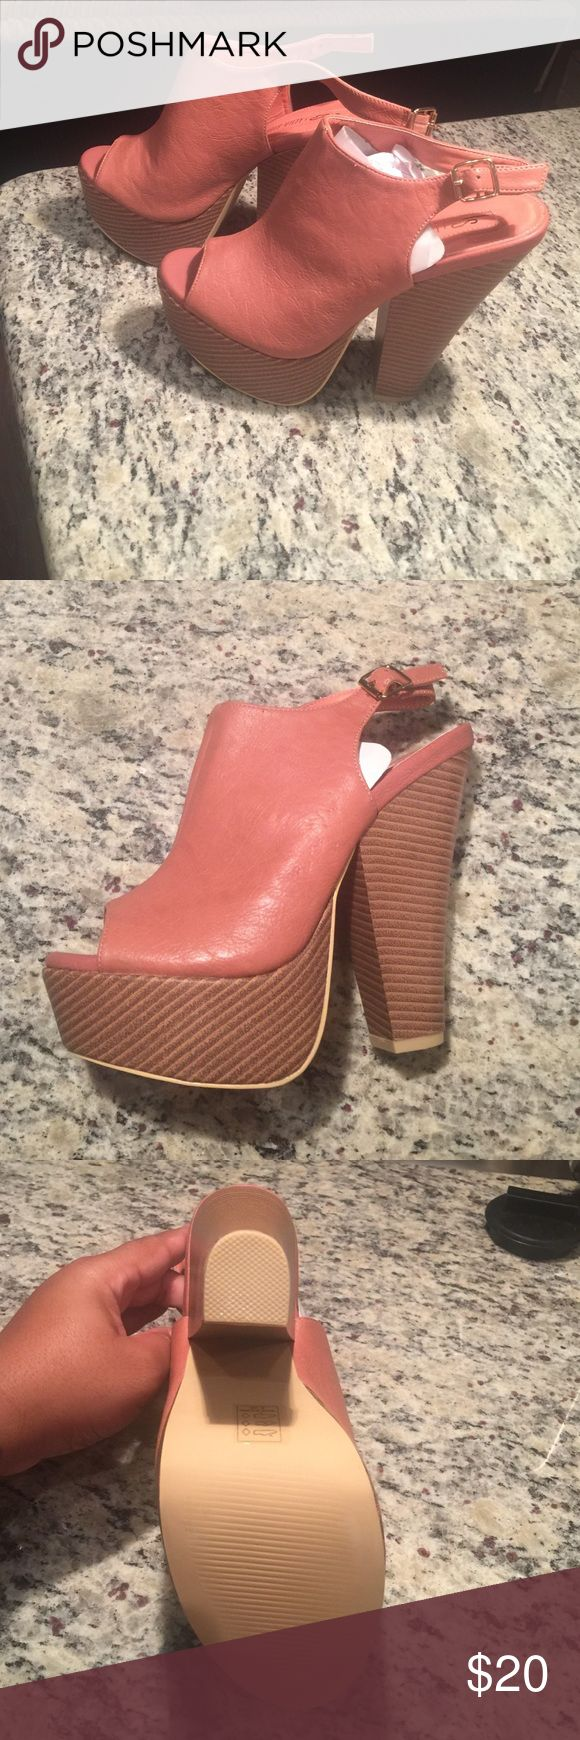 Coral peep toe mule Coral peep toe mule size 8 never been worn Leila Stone Shoes Mules & Clogs